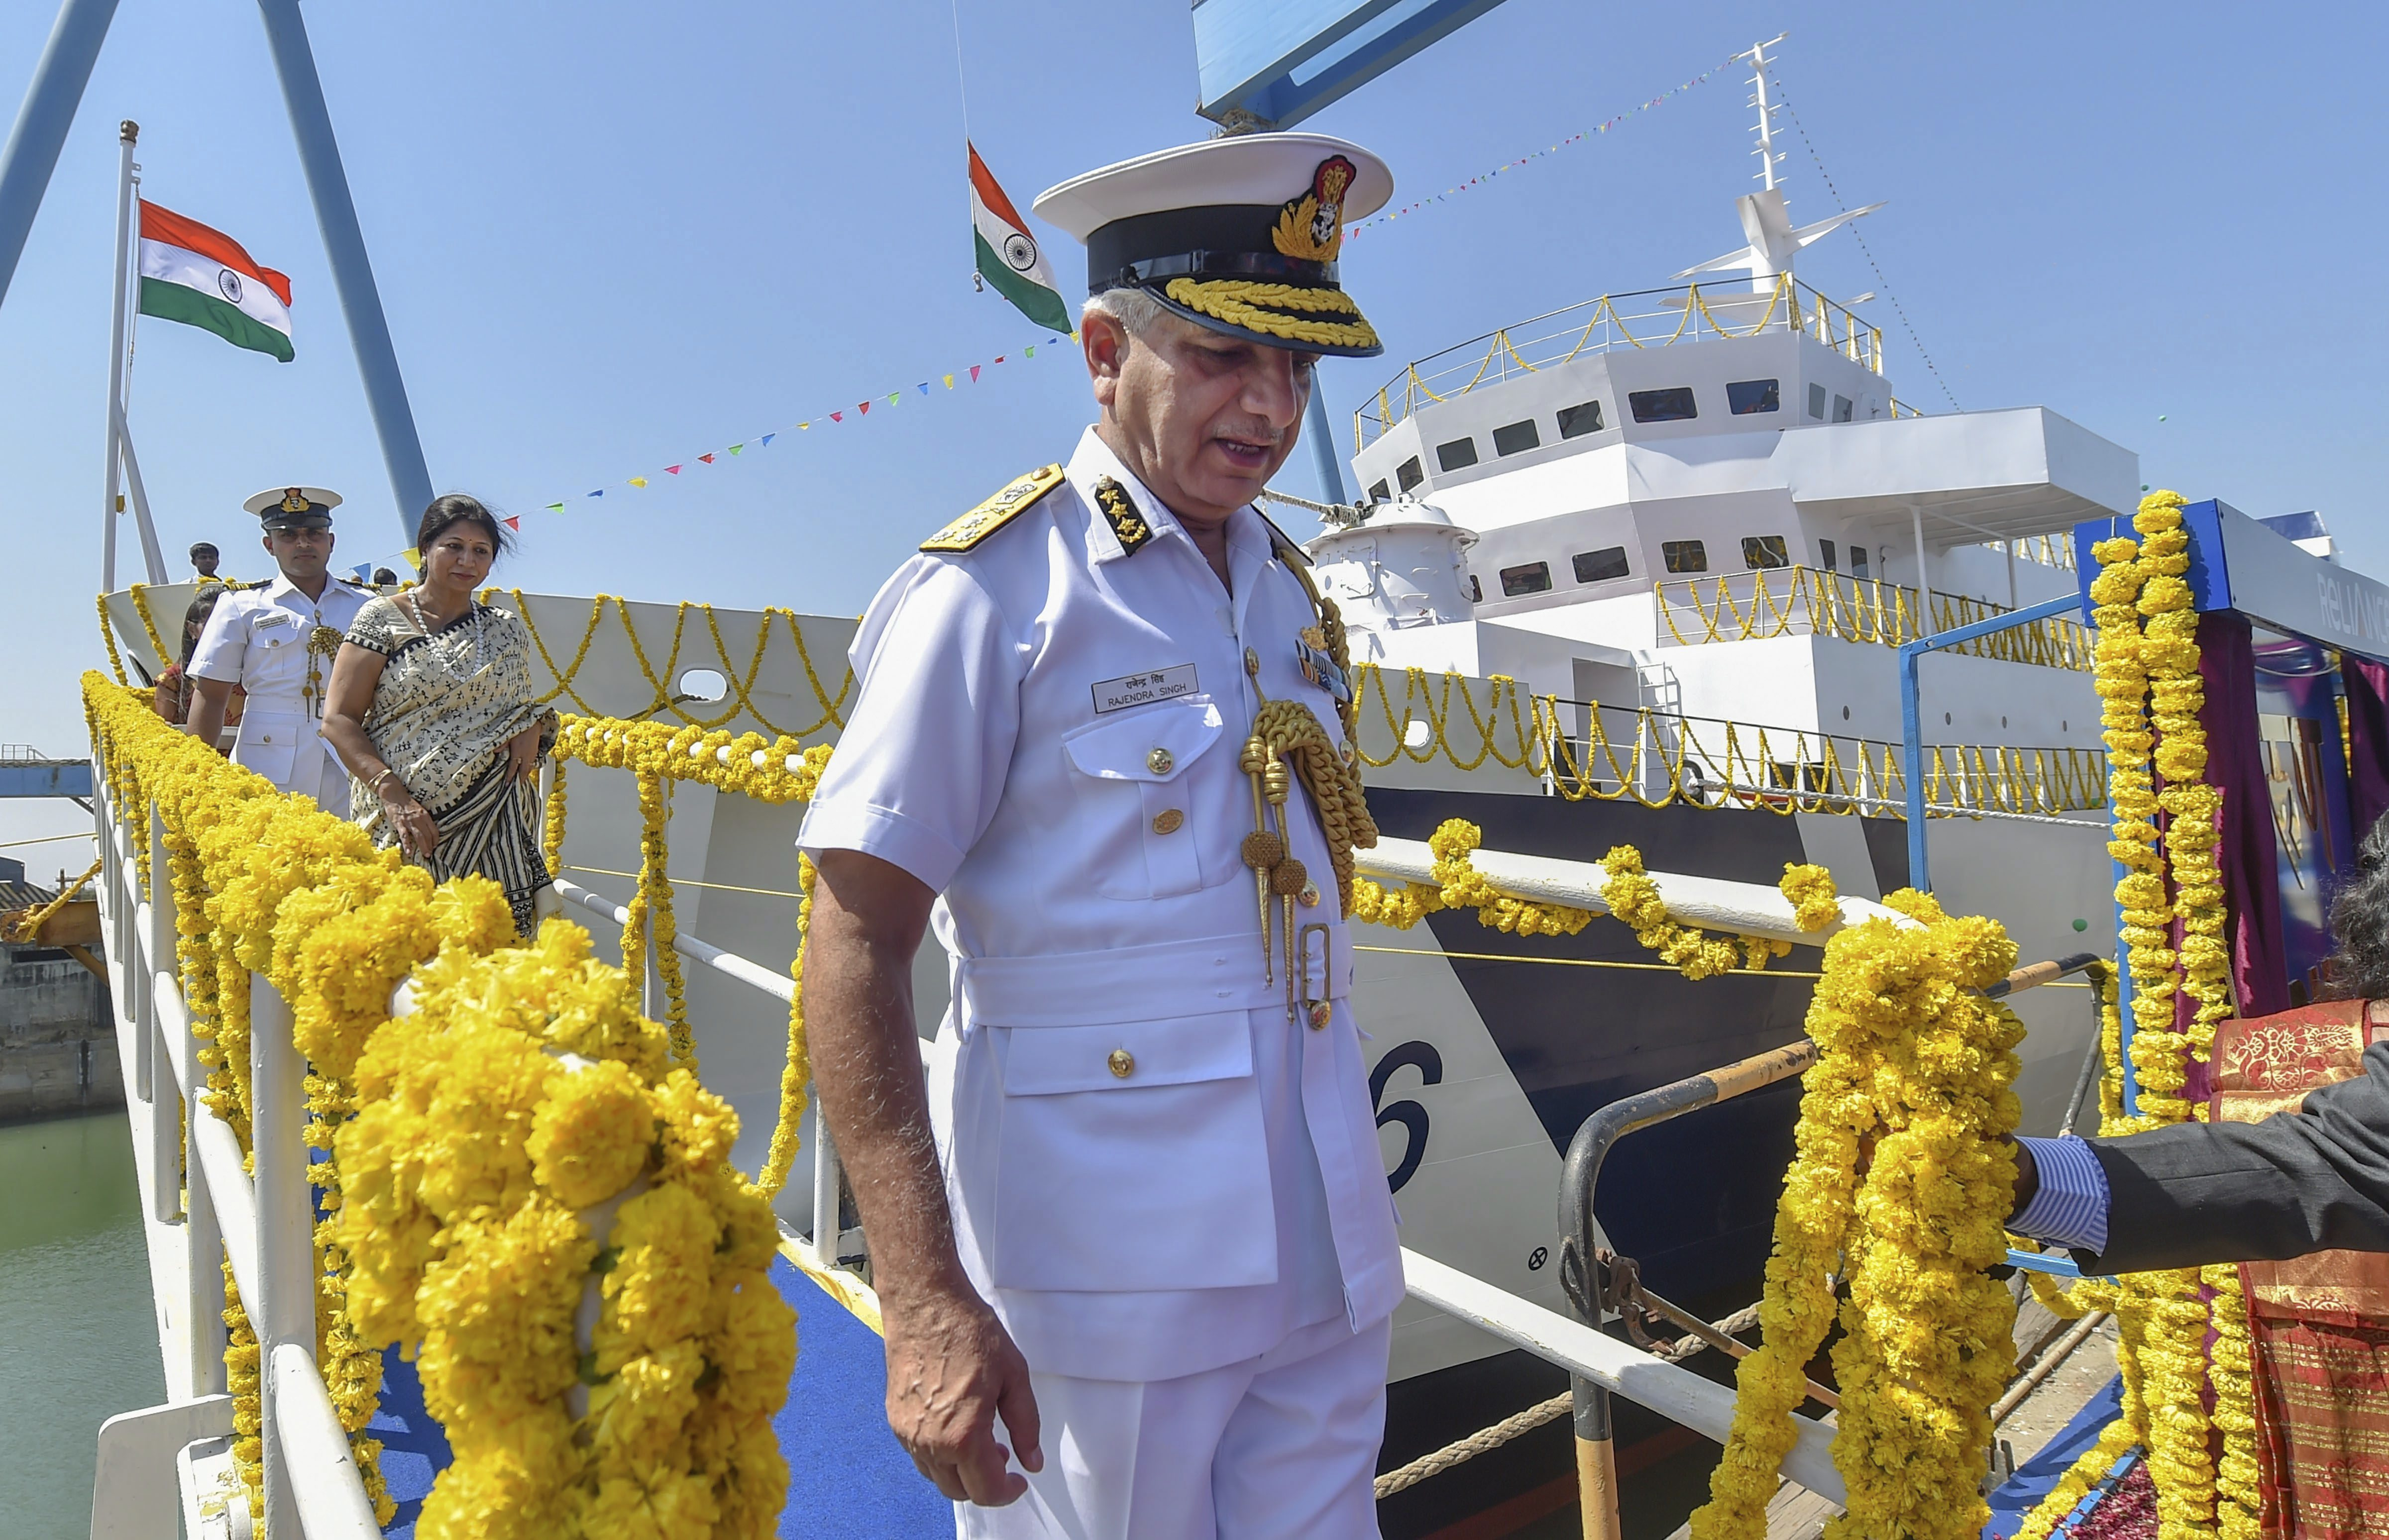 Director General Indian Coast Guard Rajendra Singh, PTM, TM during the launch of ICGS 'Varuna', an indigenously-designed training vessel built by Reliance Naval and Engineering Limited for the Indian Coast Guard at Pipavav Shipyard - PTI